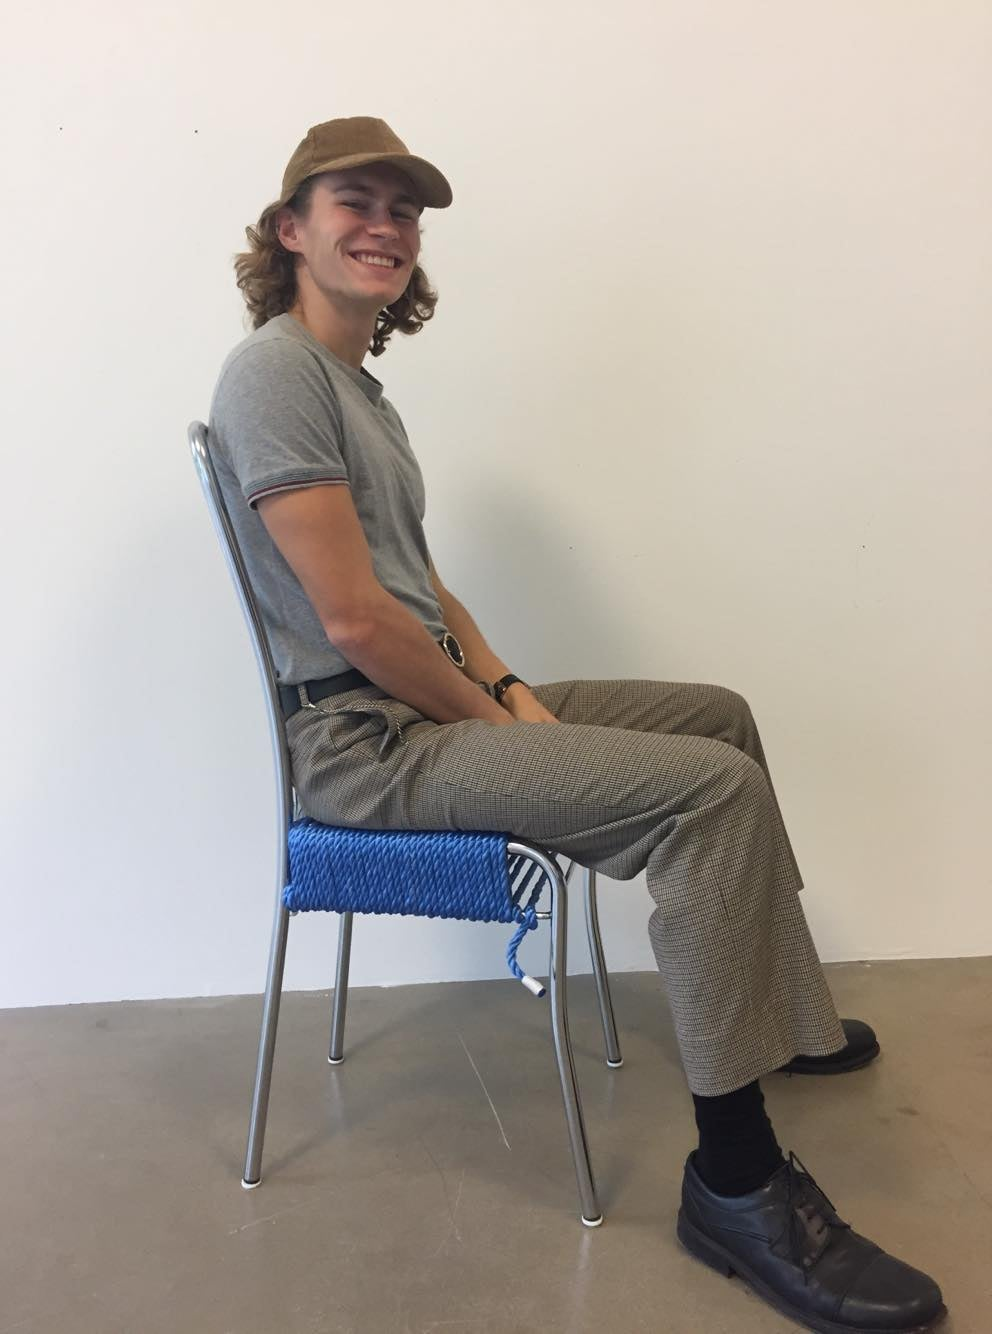 Enjoy Your New Chair!